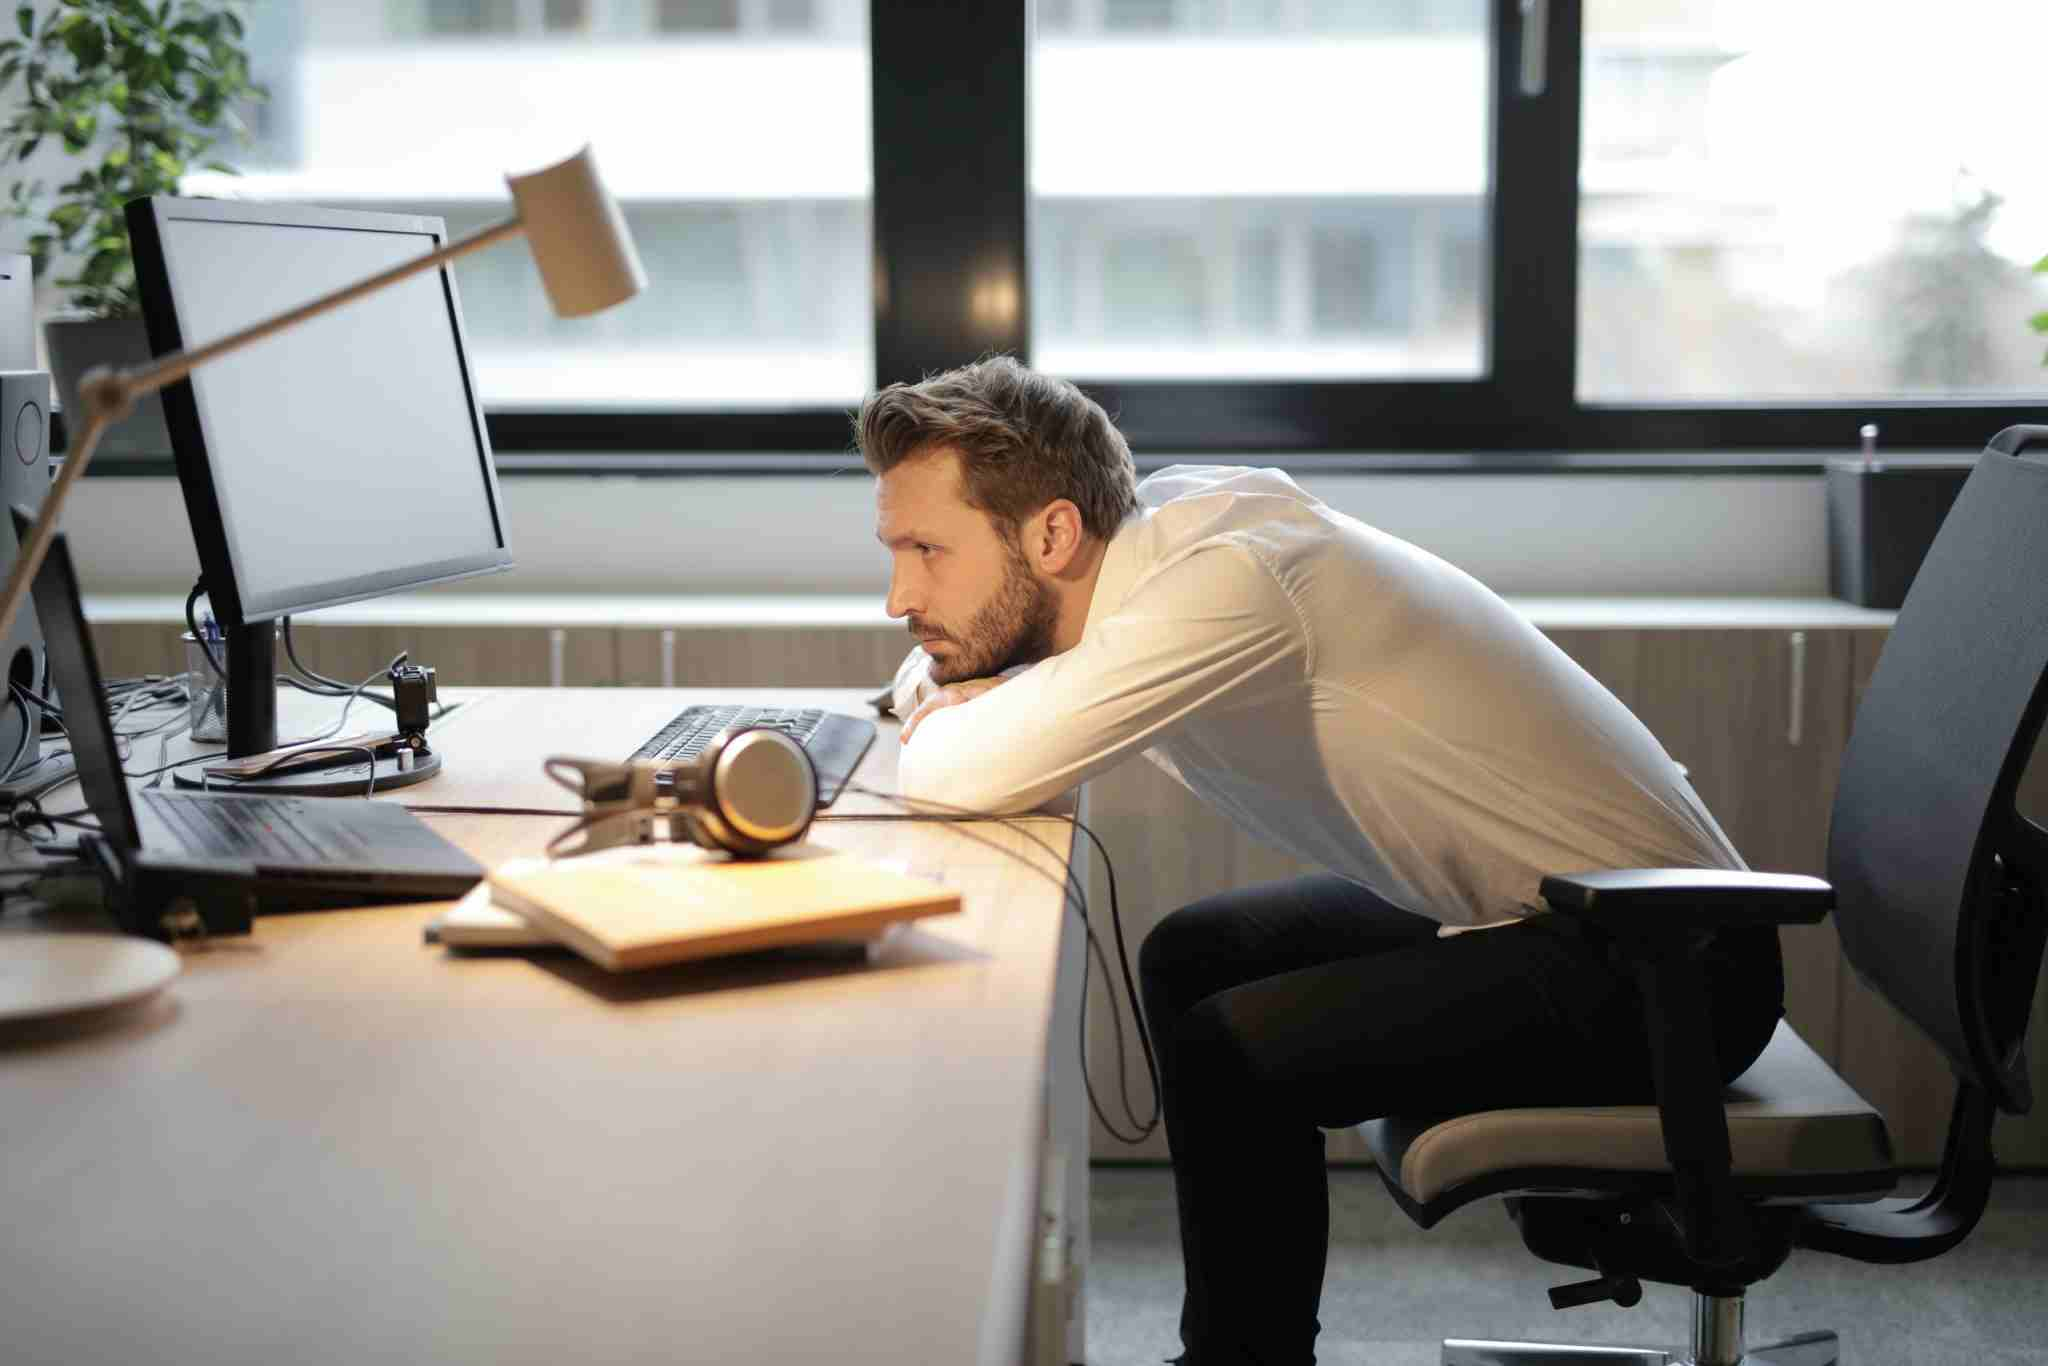 A simple yet effective guide to improve productivity in workplace